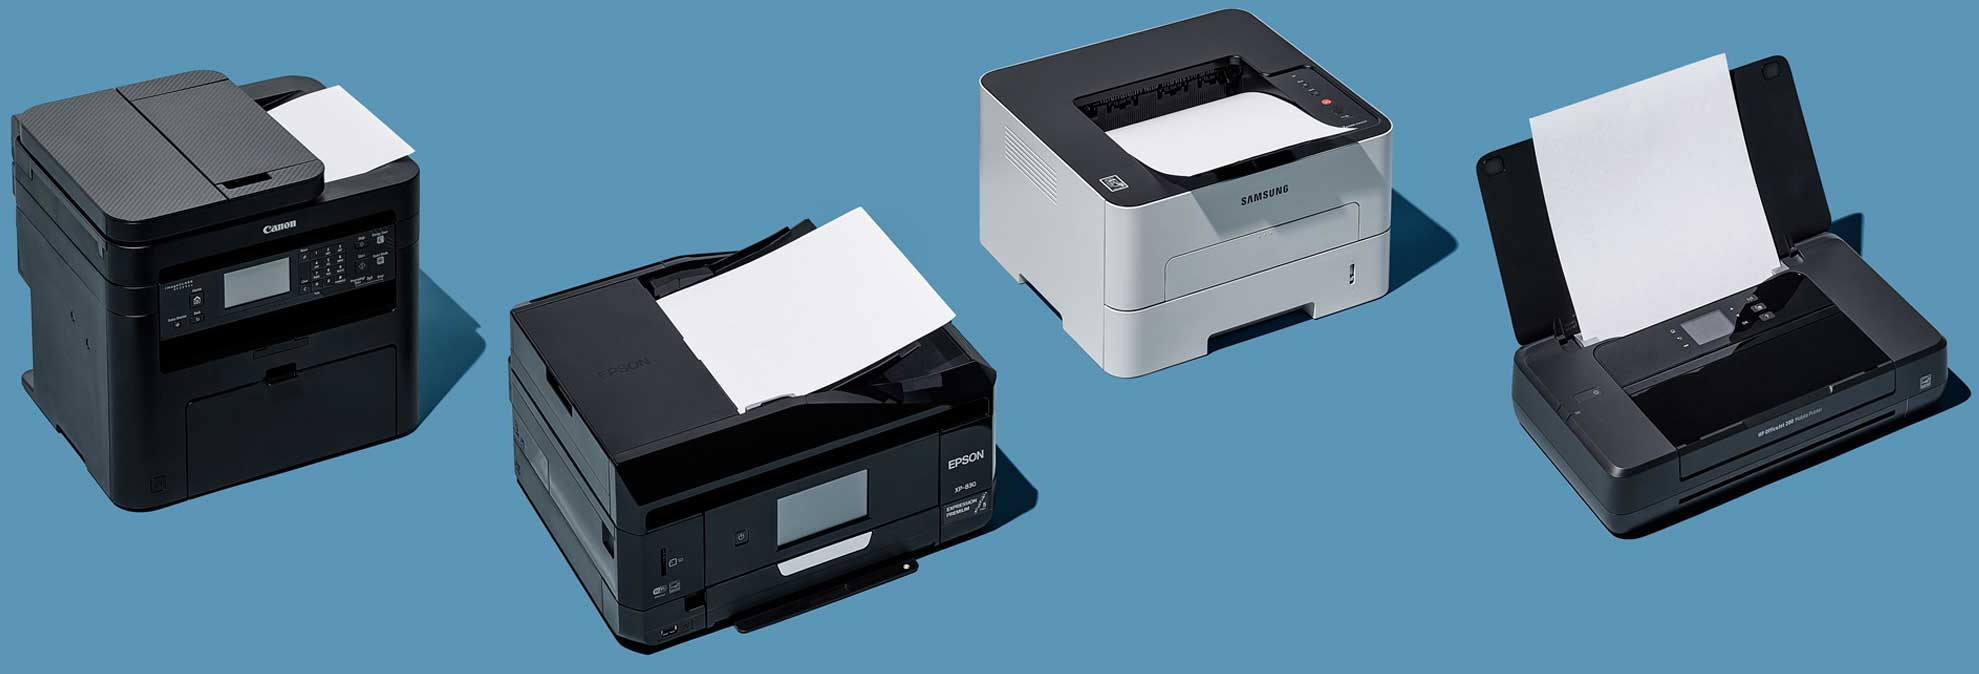 Color printing vs black and white cost - Color Printing Vs Black And White Cost 38